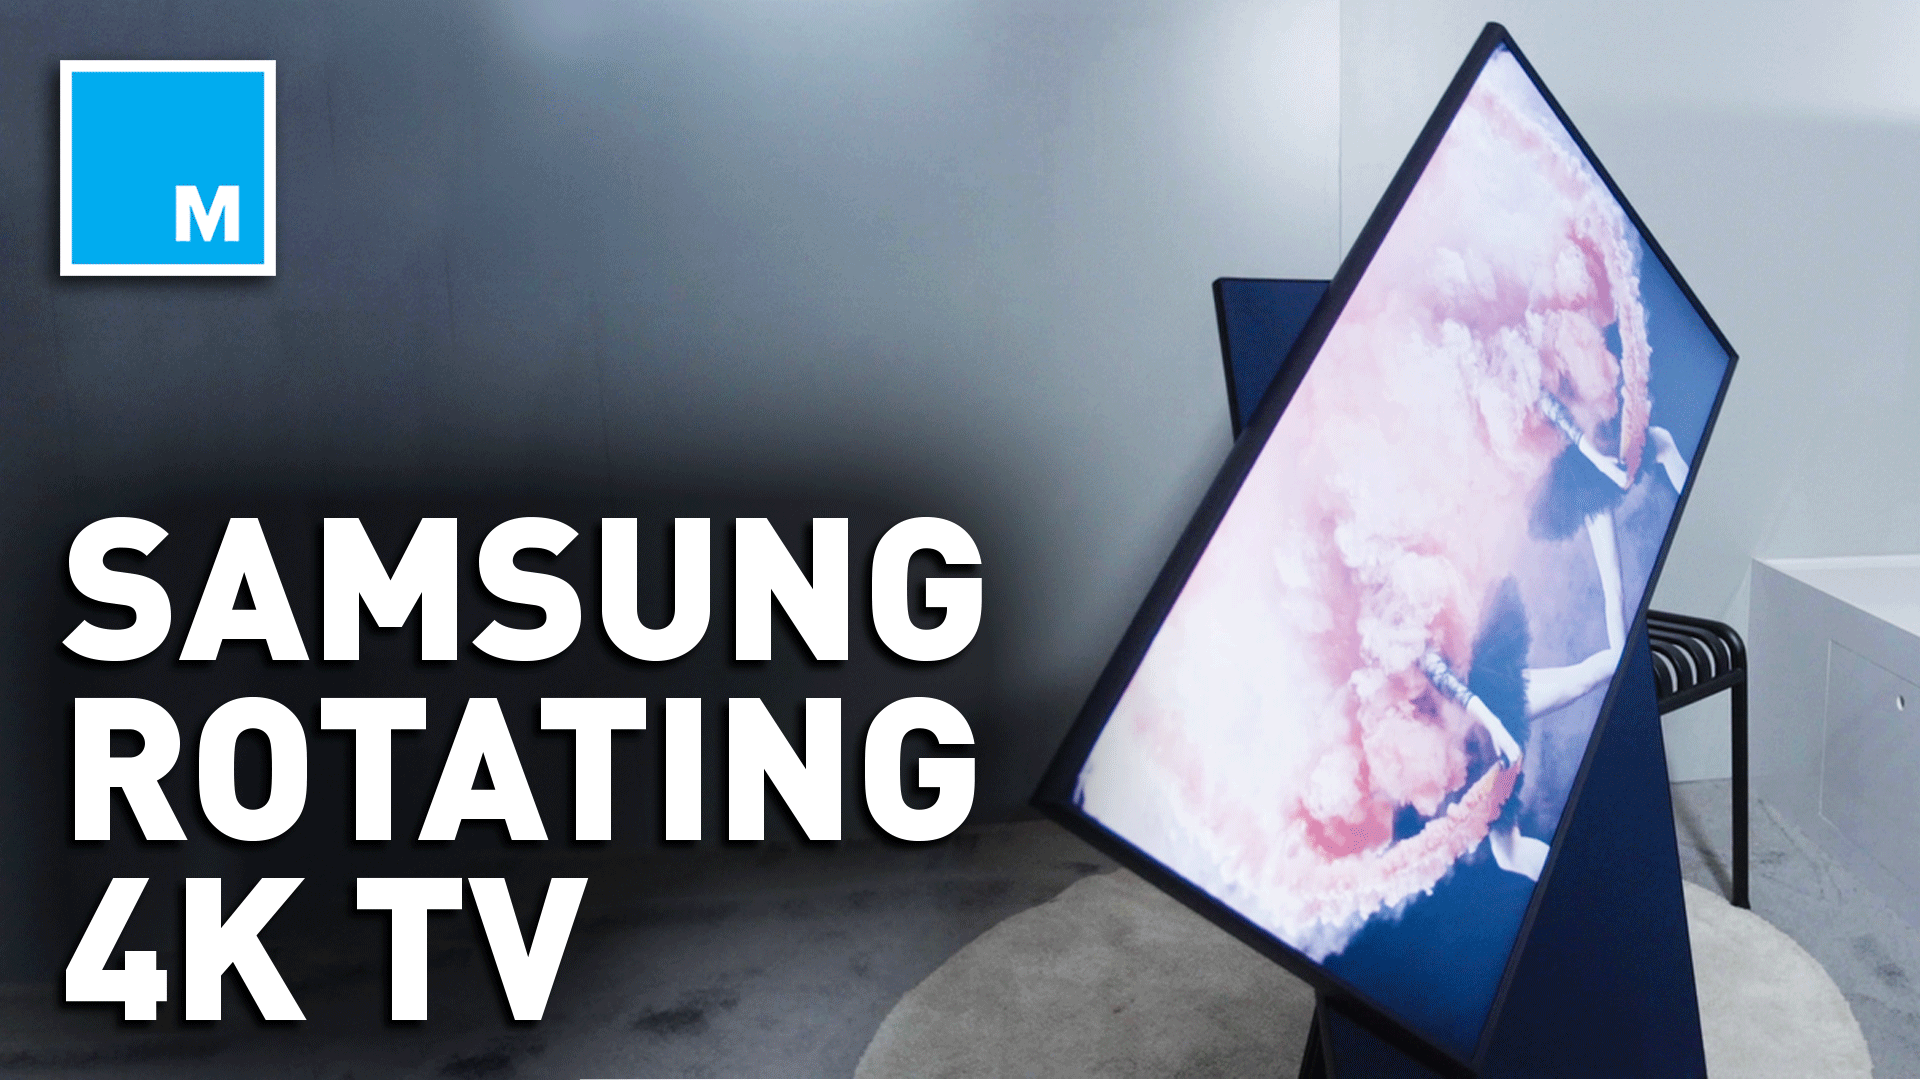 Samsung S New Vertical 4k Tv Is Perfect For Tiktok